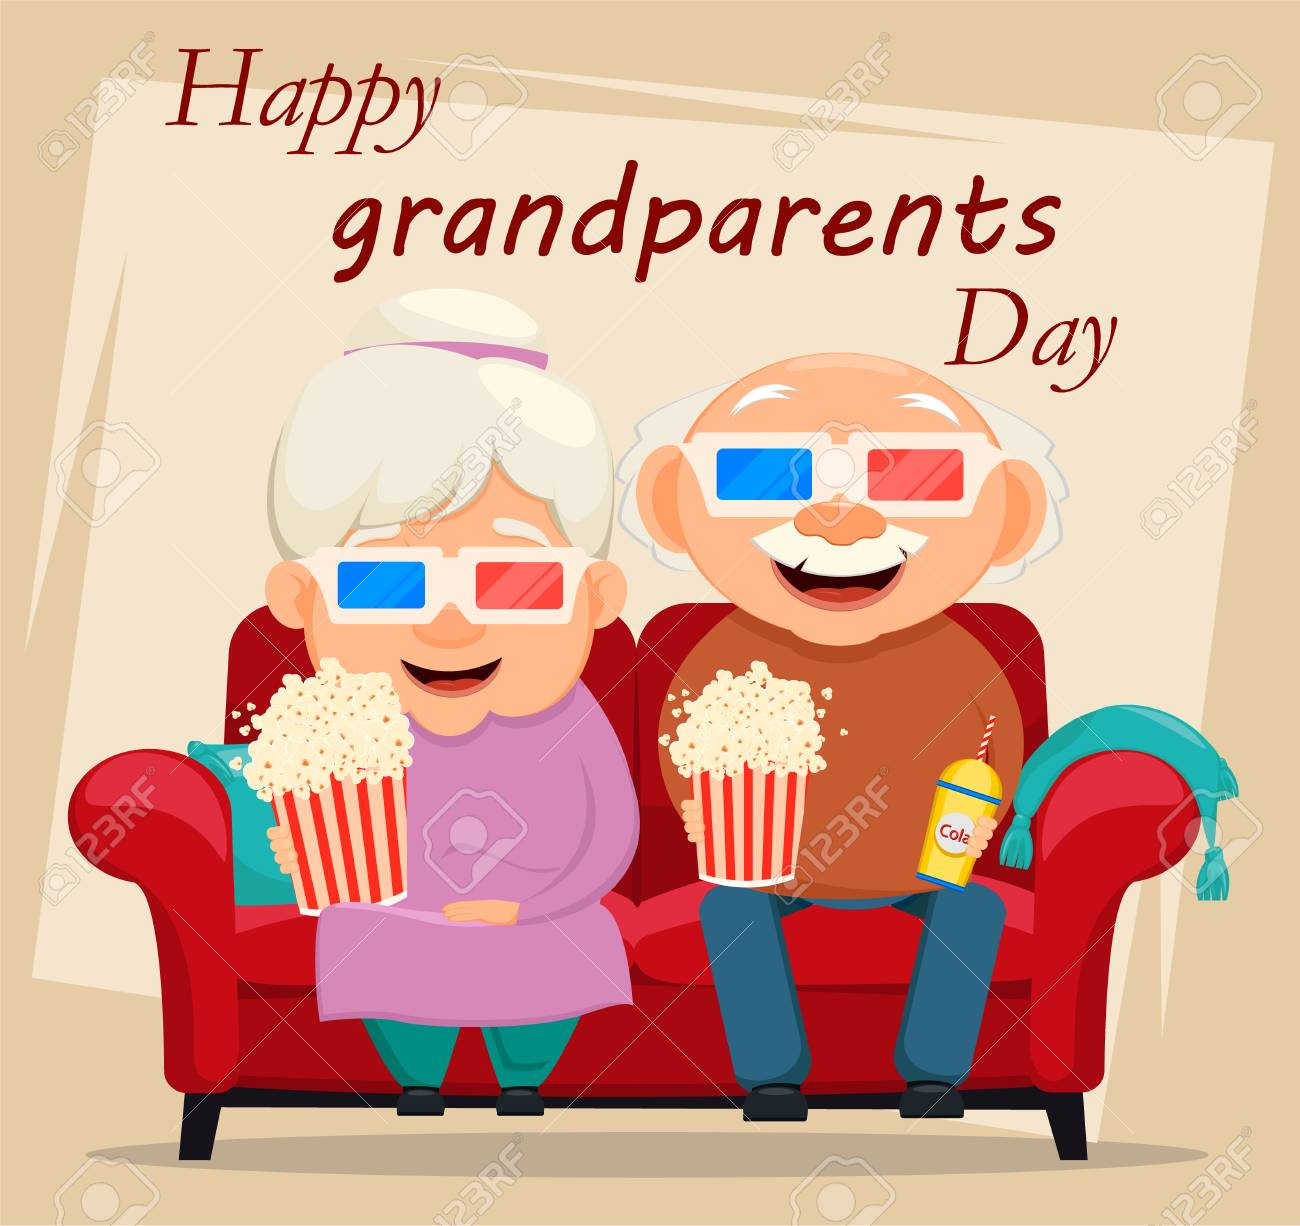 Grandparents day greeting card grandmother and grandfather watching grandparents day greeting card grandmother and grandfather watching movie at home illustration on light m4hsunfo